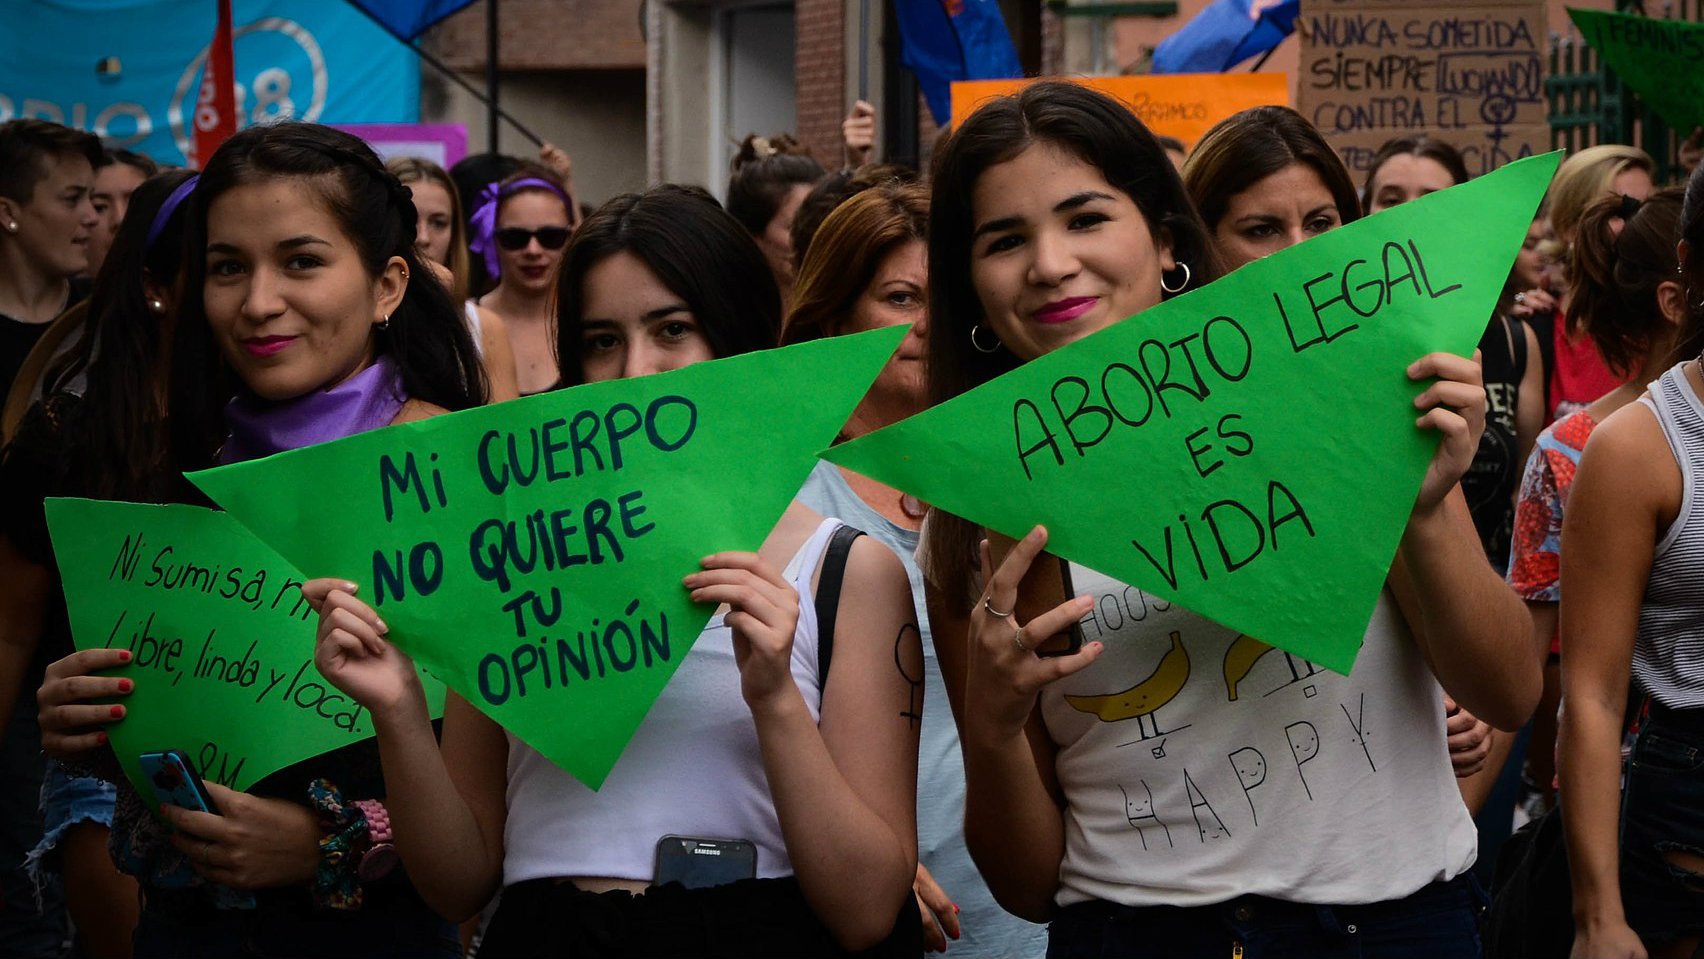 Pro-abortion activists in Argentina